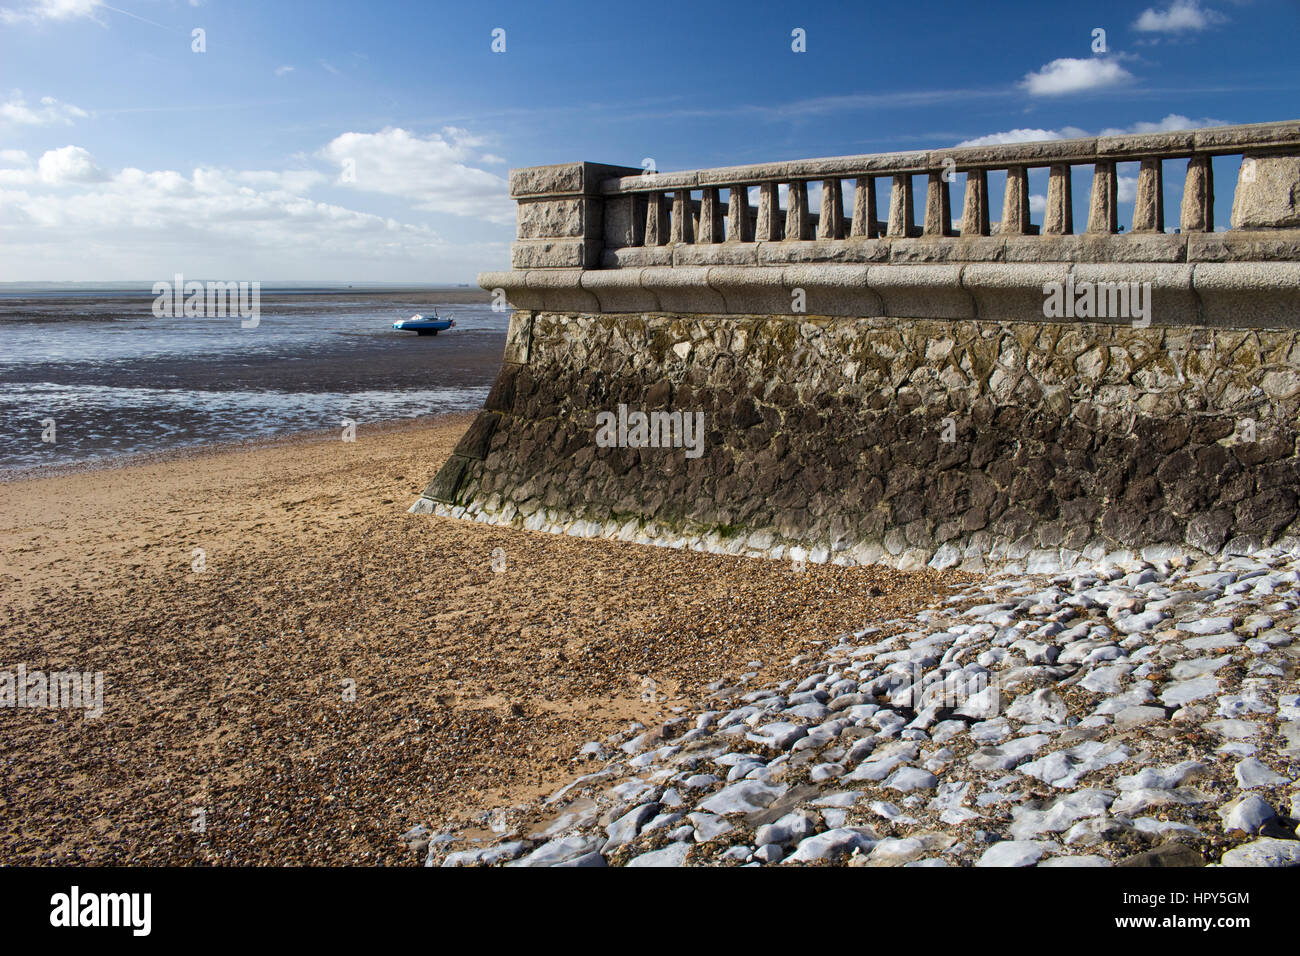 Promenade wall at Westcliff, near Southend-on-Sea, Essex, England against a blue sky Stock Photo